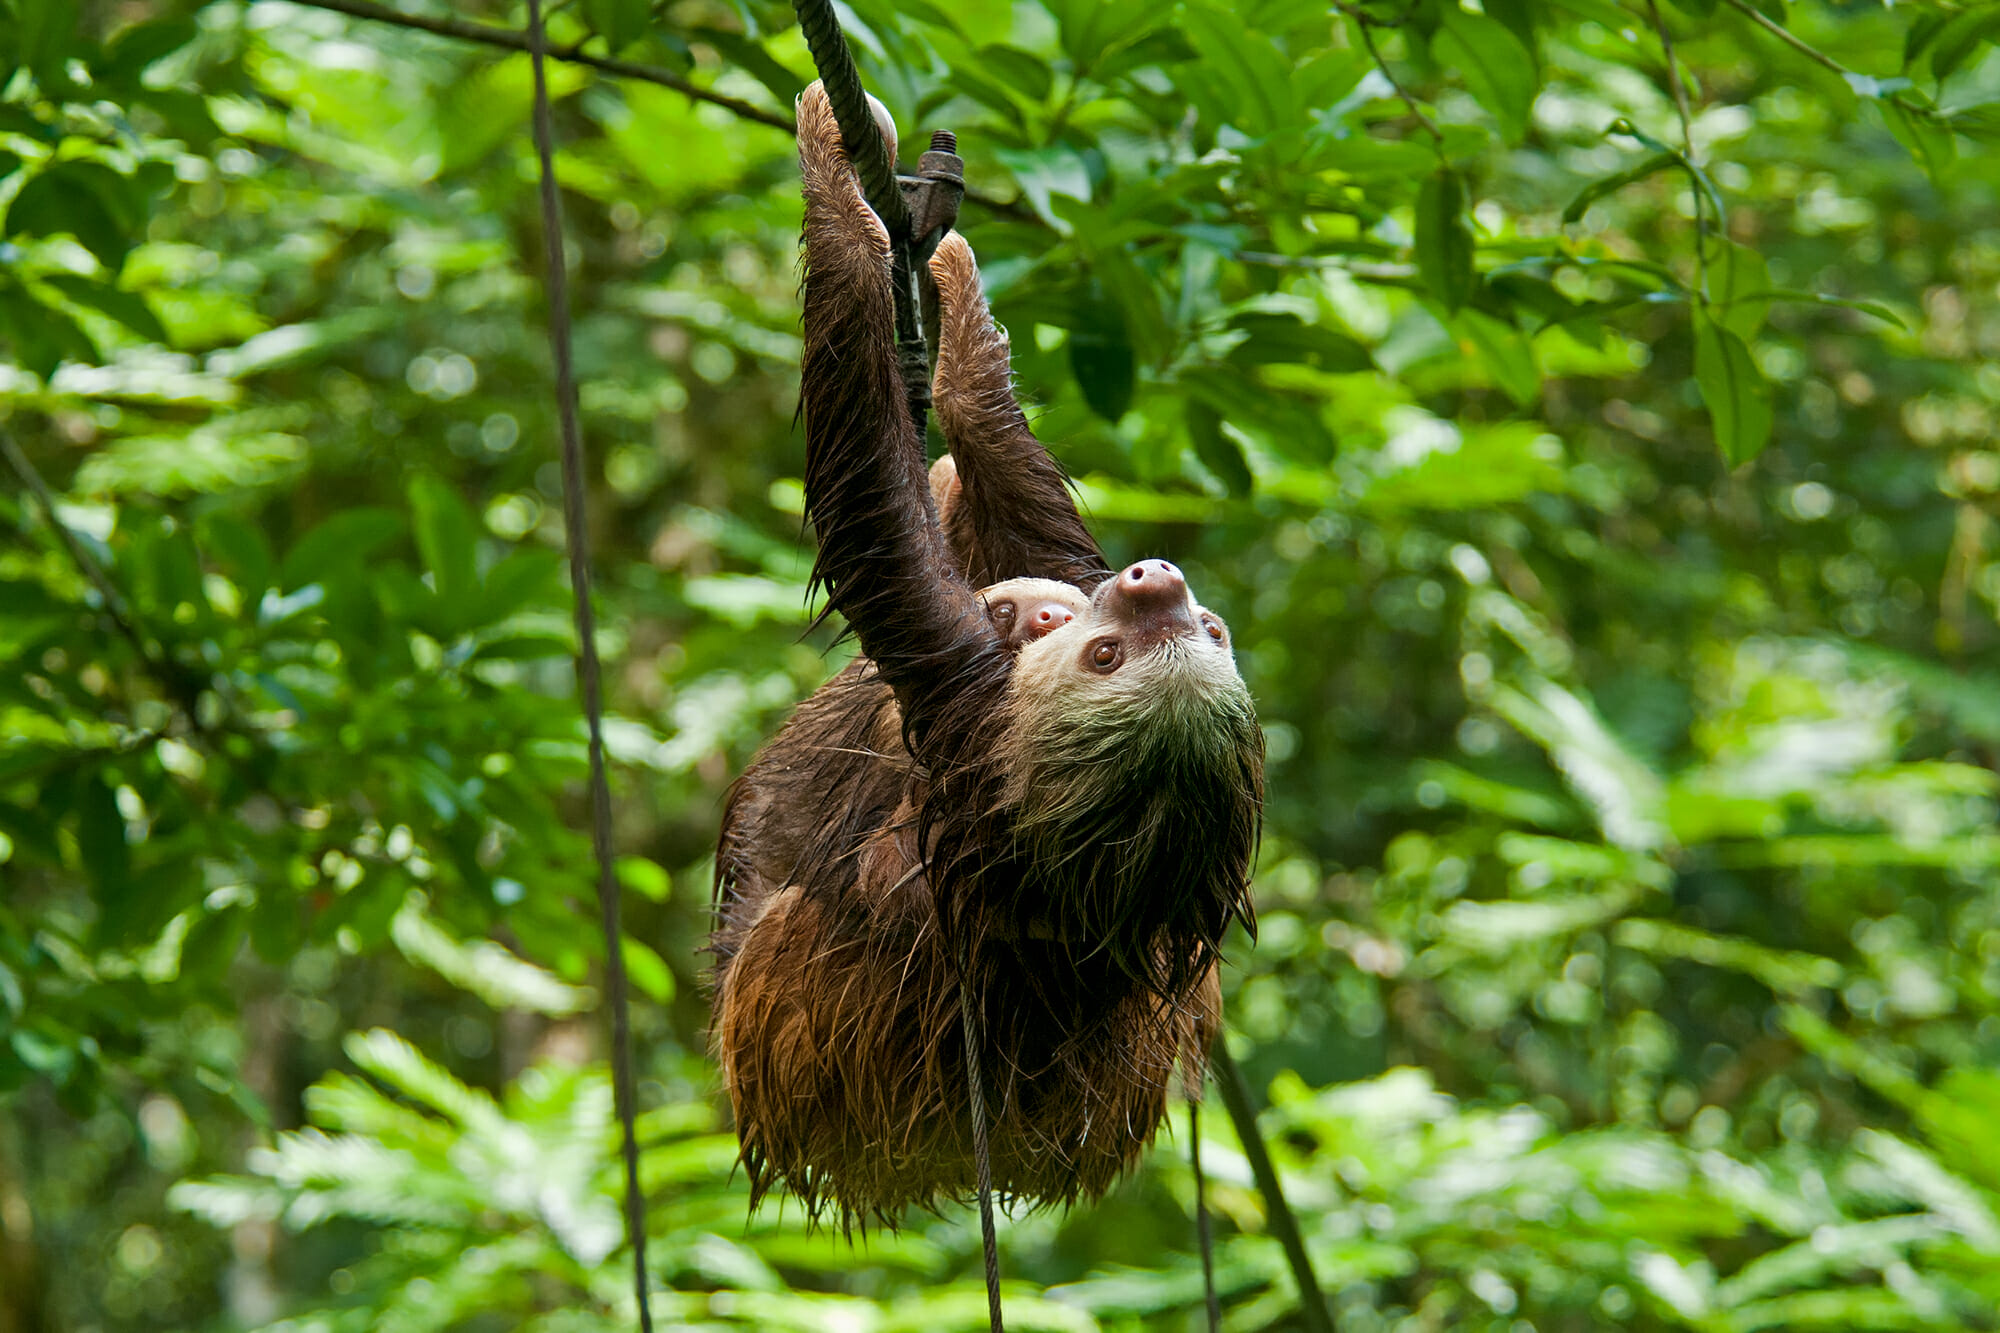 Wild journeys - Hoffmann's two-toed sloth in Tirimbina Reserve, Costa Rica